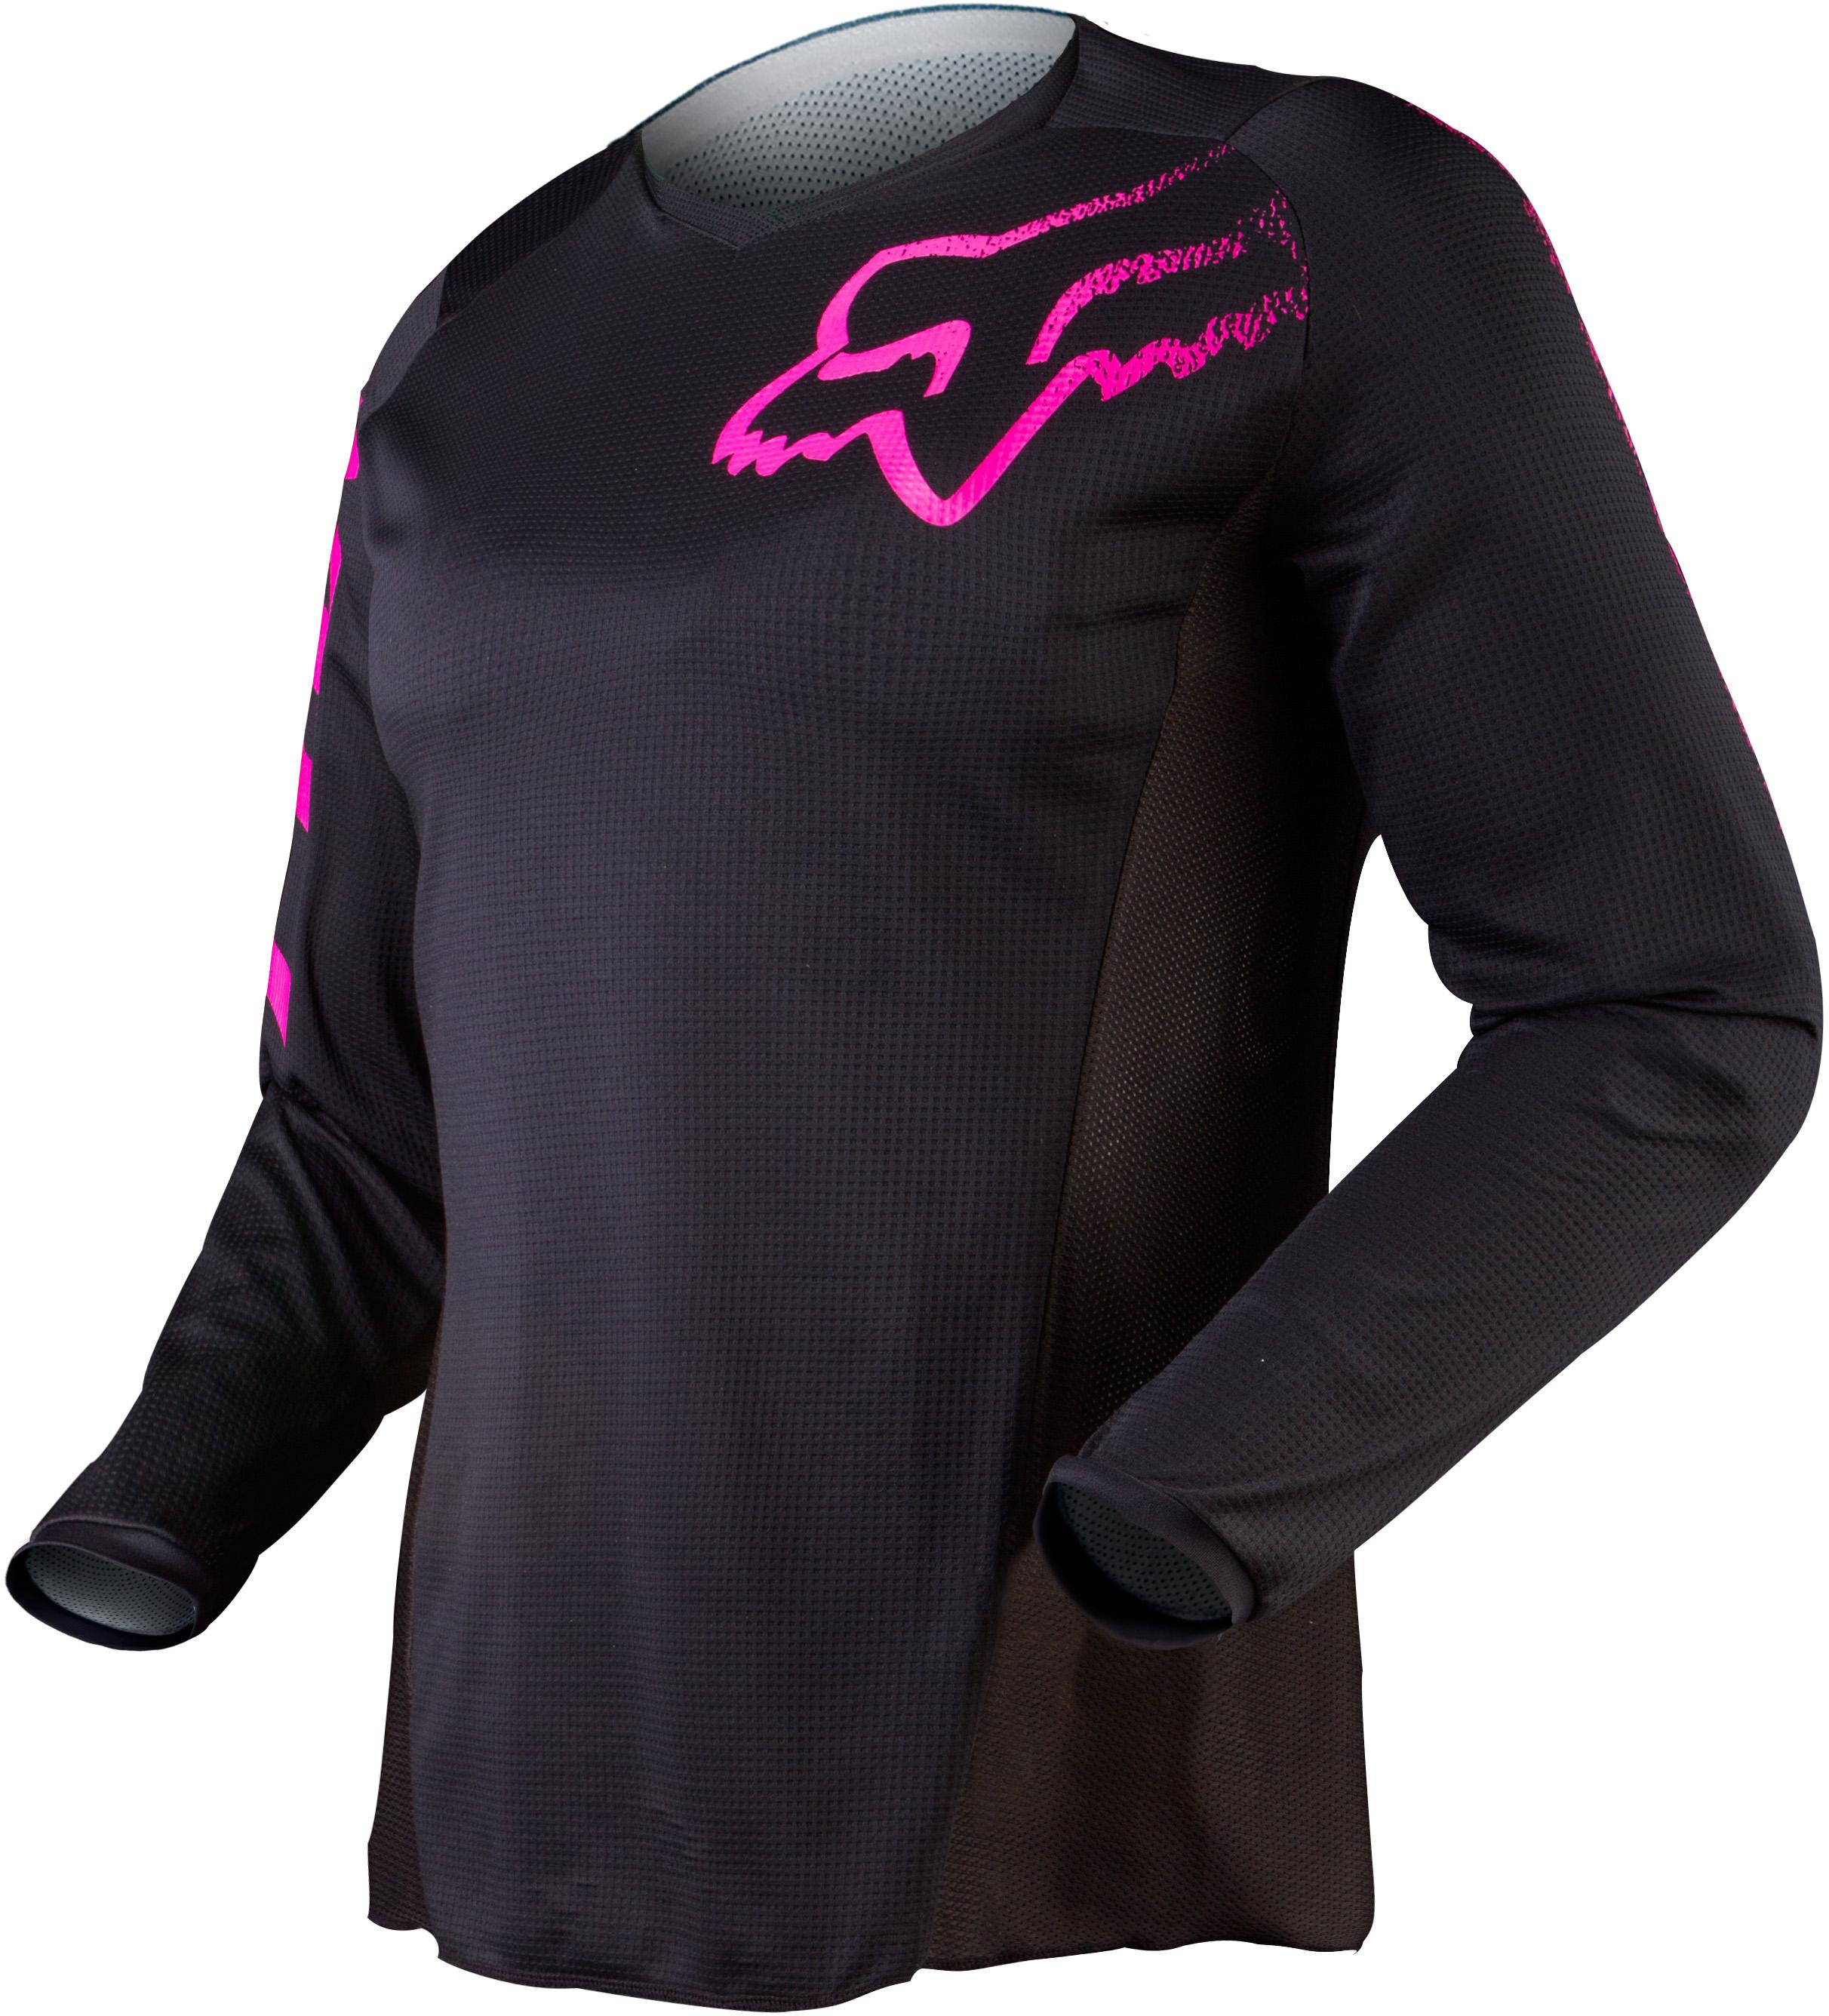 Fox 2019 Youth Girls Blackout Jersey Black Pink Online